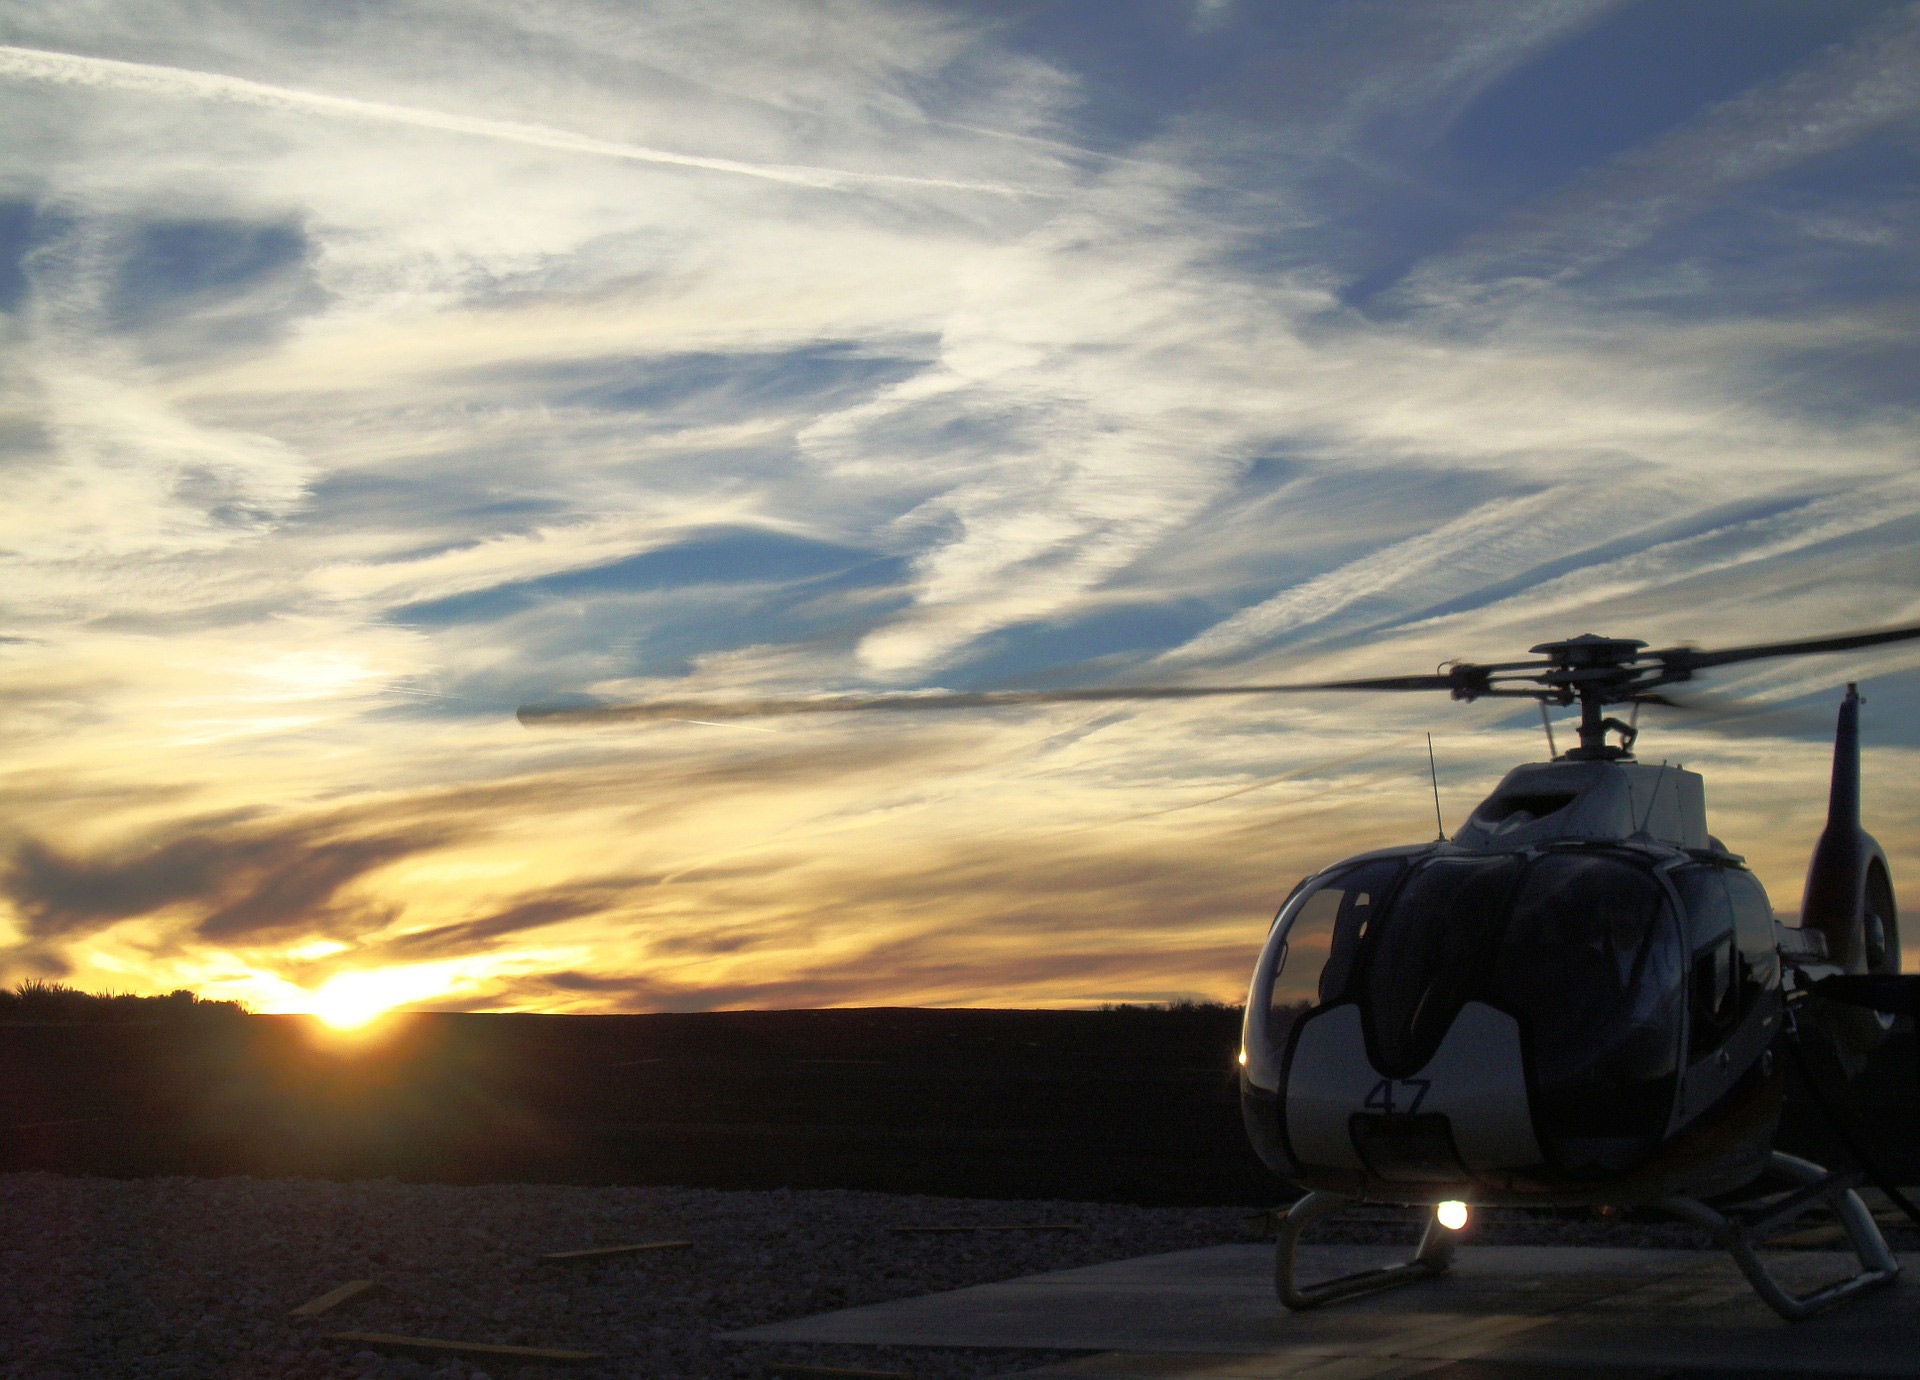 aero-dynamic-helikopter-sunset